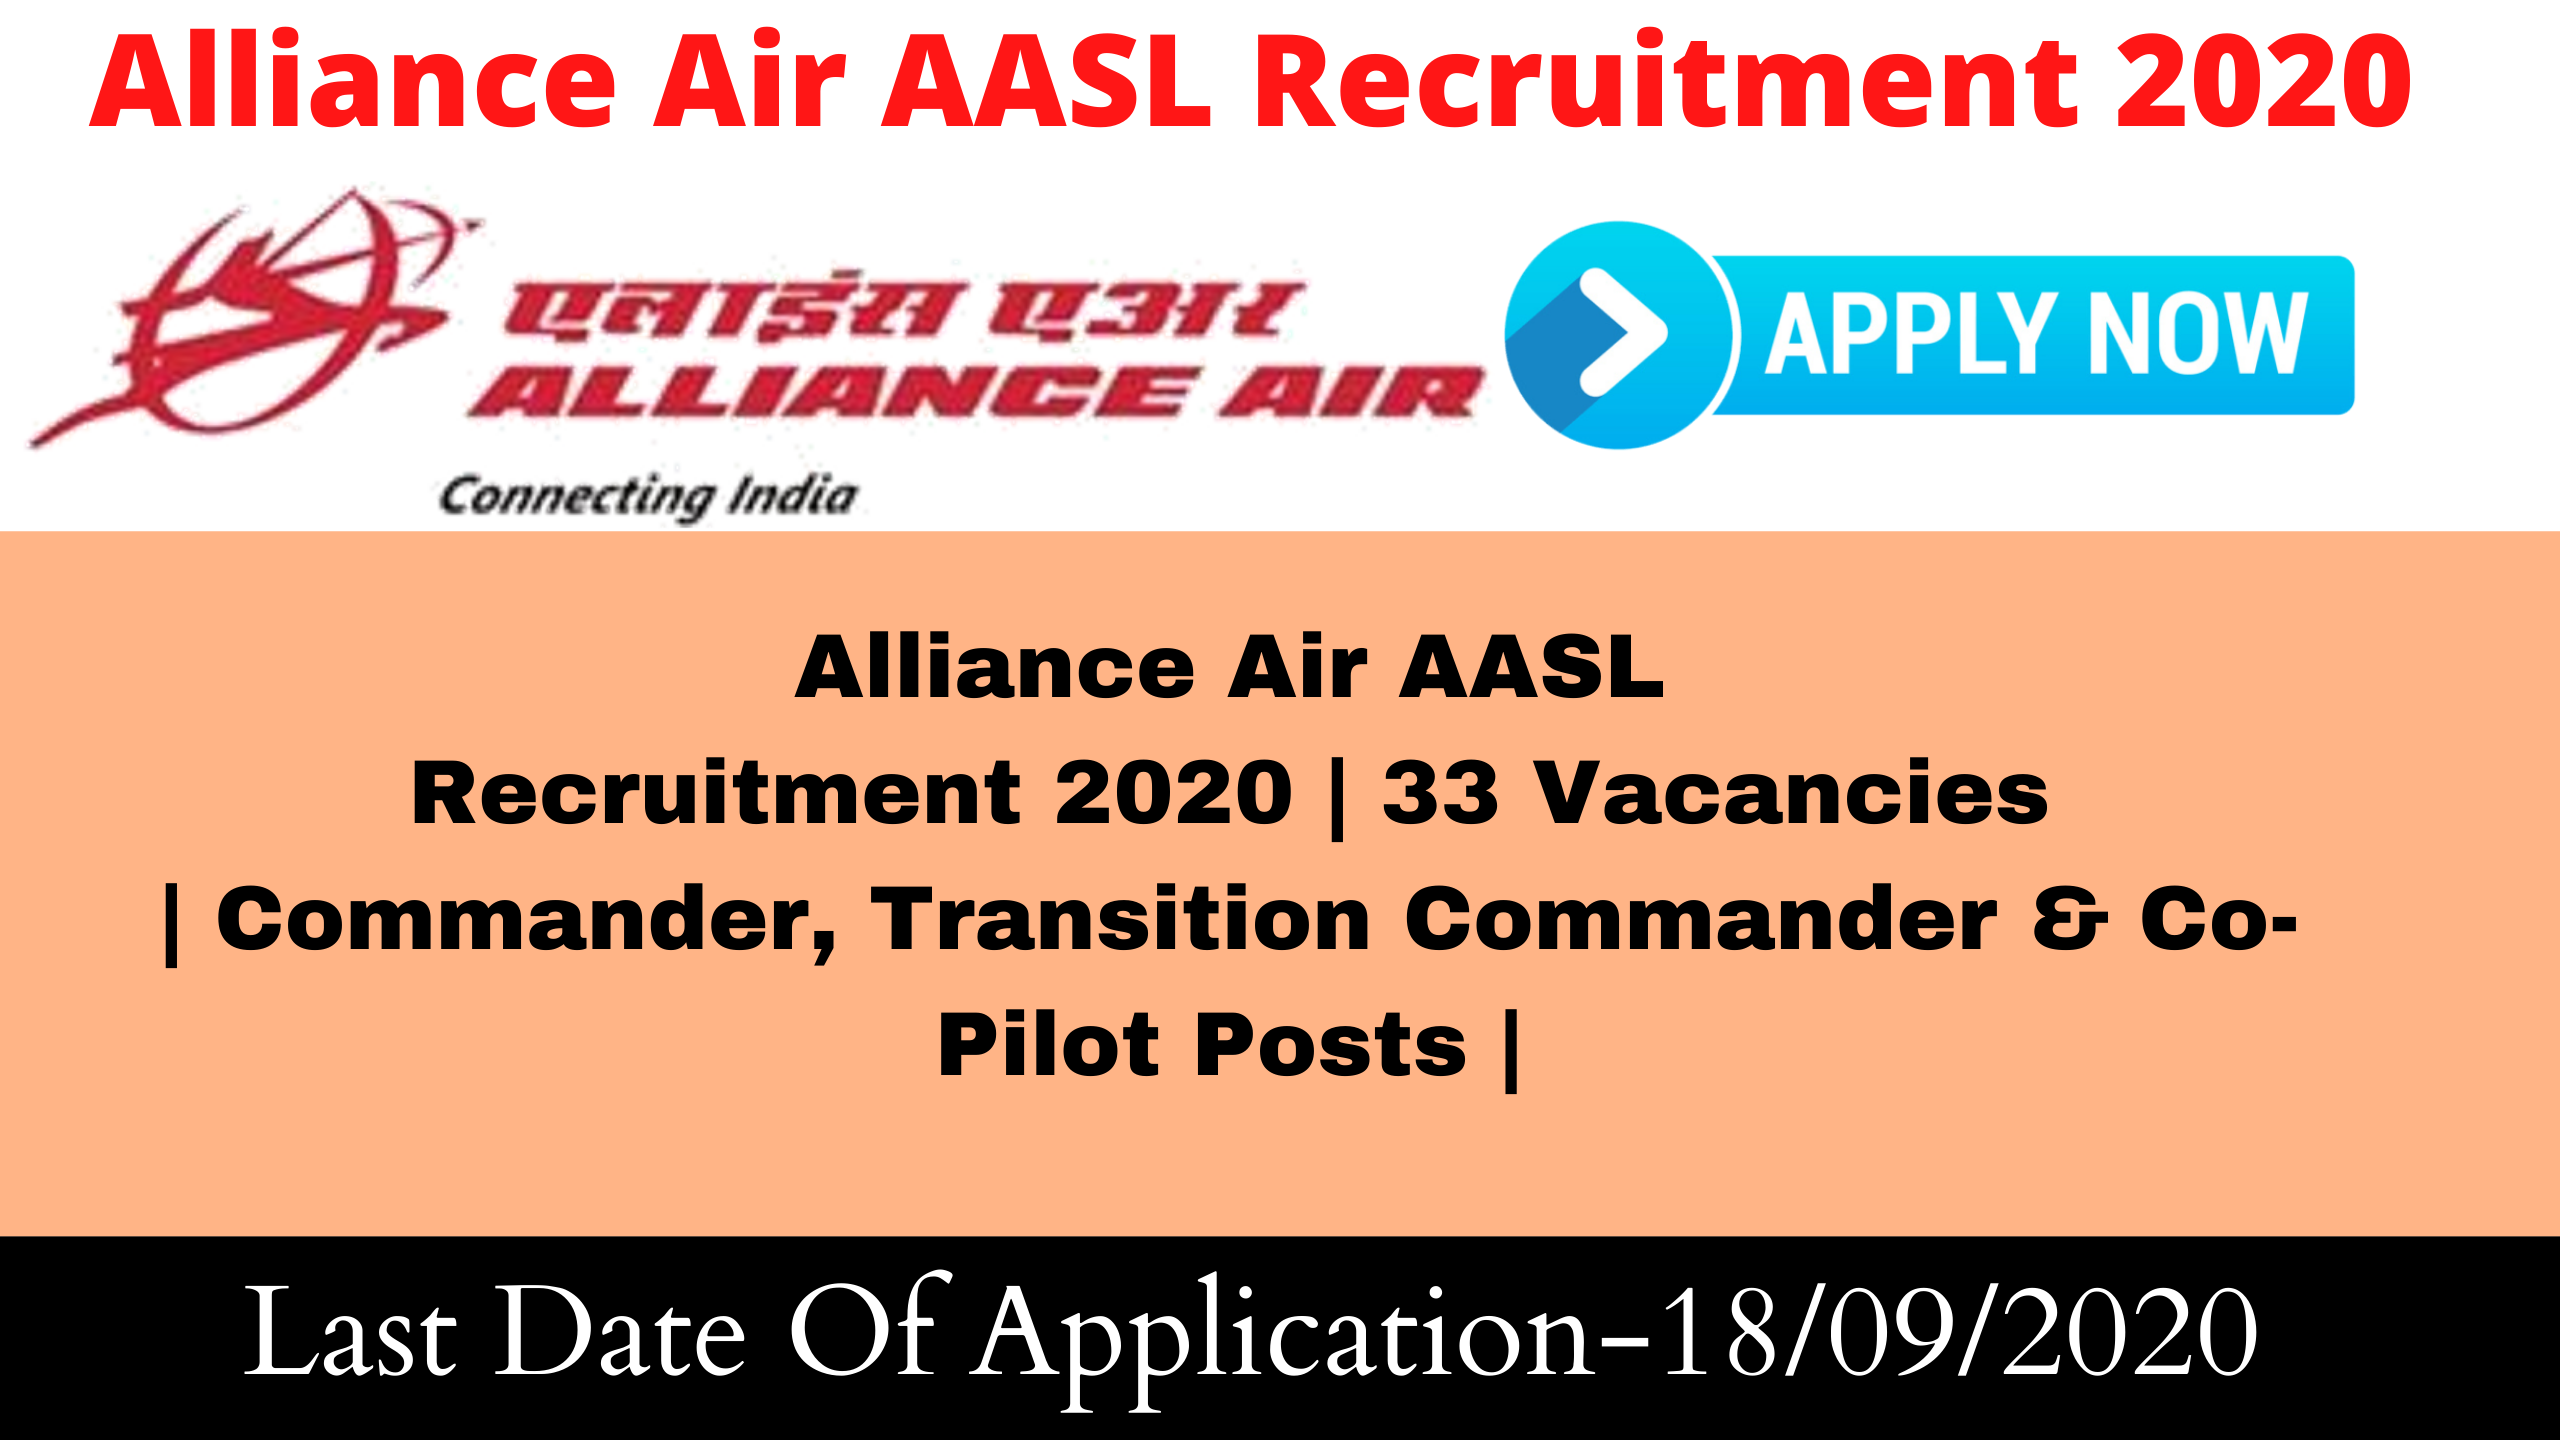 Alliance Air AASL Recruitment